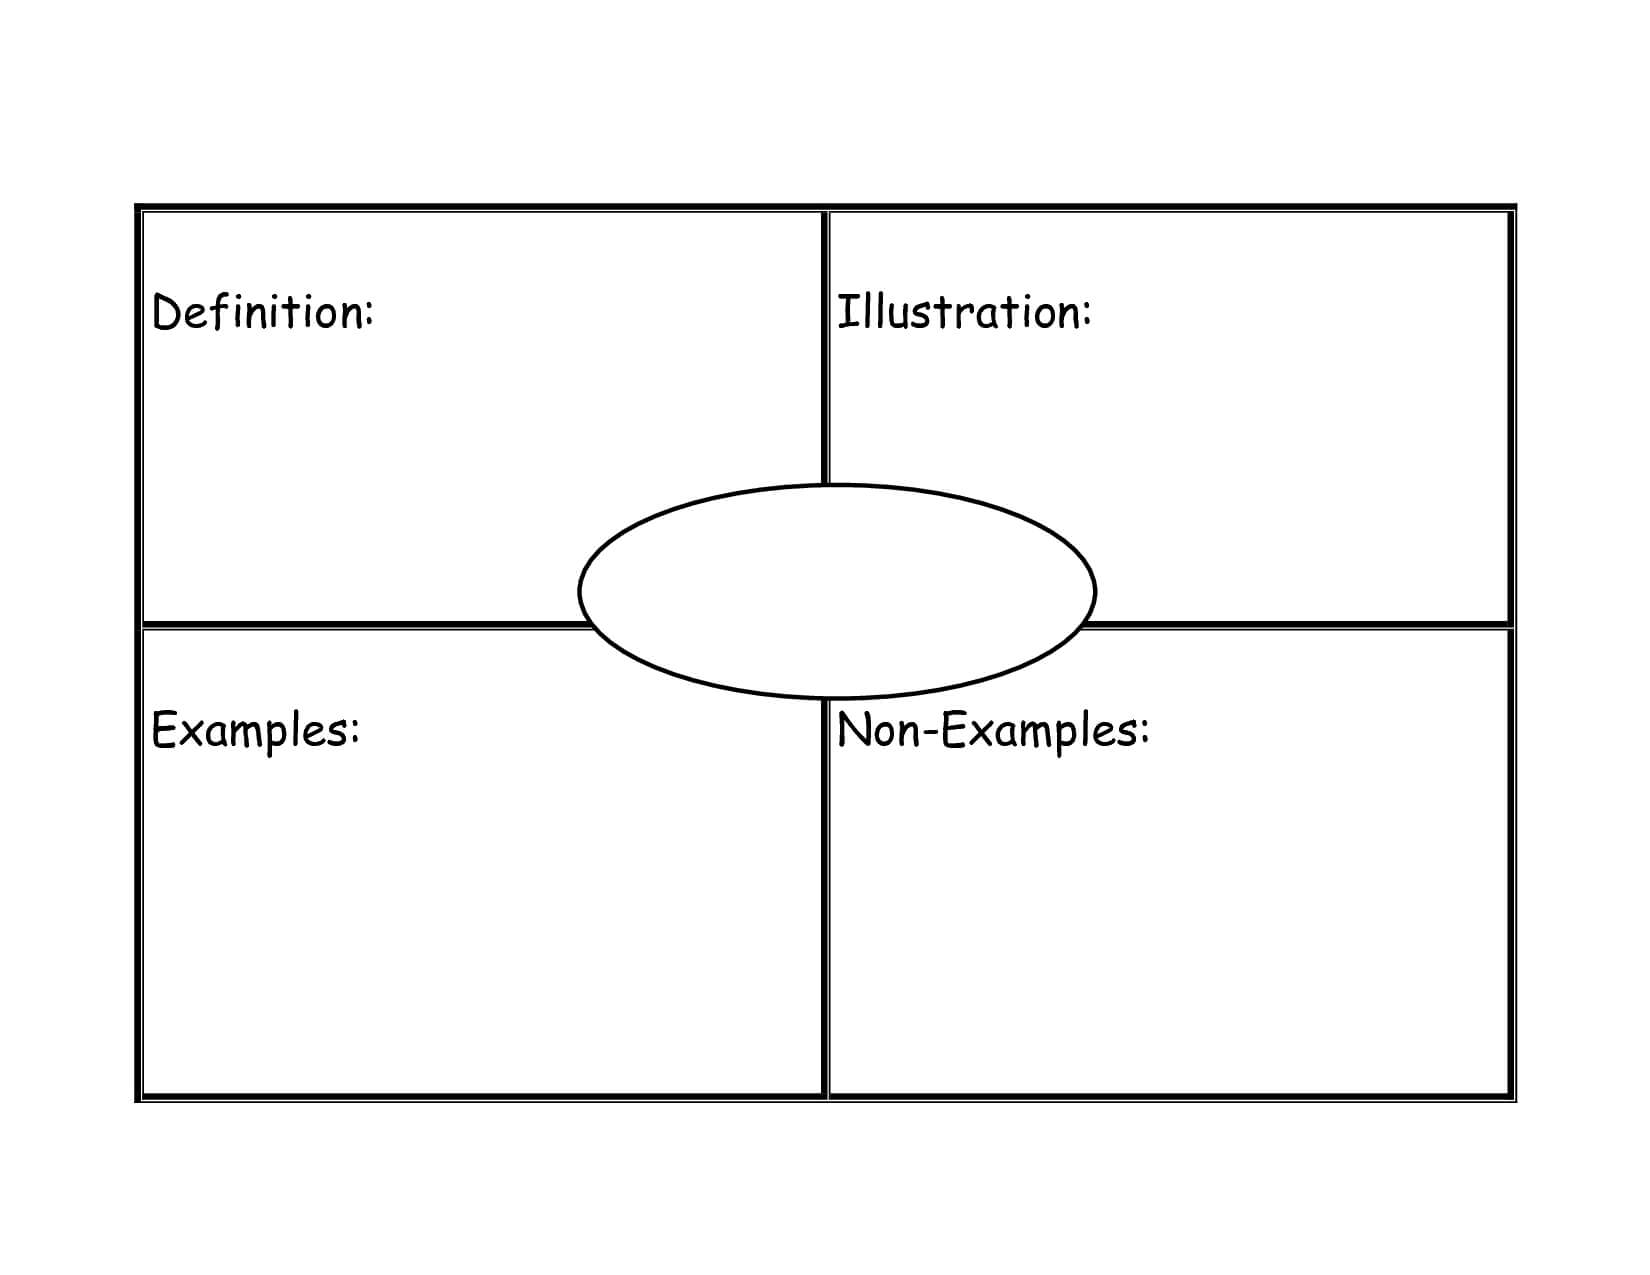 Frayer Model Graphic Organizer Template | Vocabulary Graphic With Regard To Blank Frayer Model Template